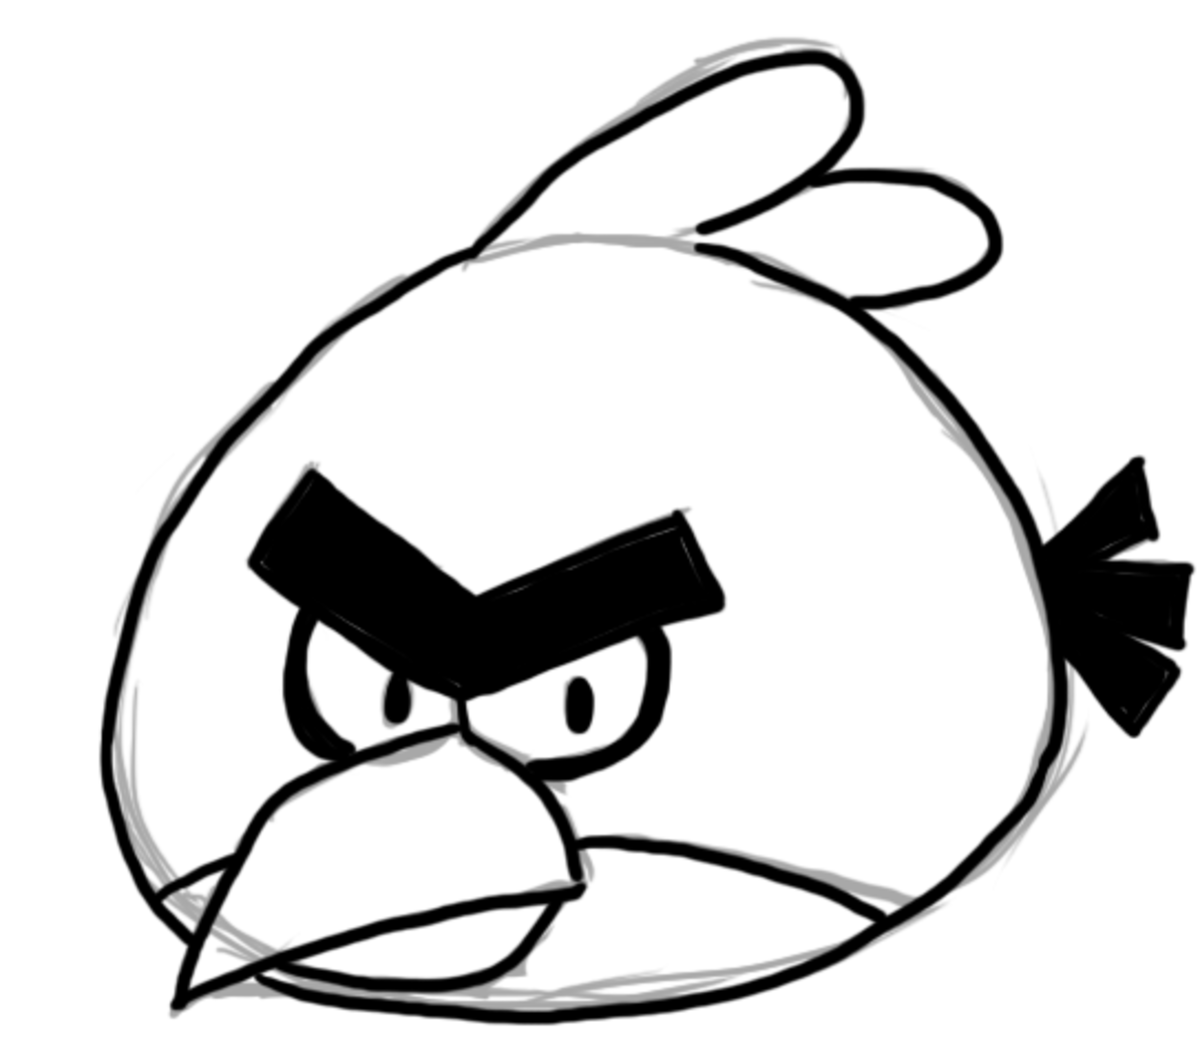 angry birds outline free angry birds black and white download free clip art angry birds outline